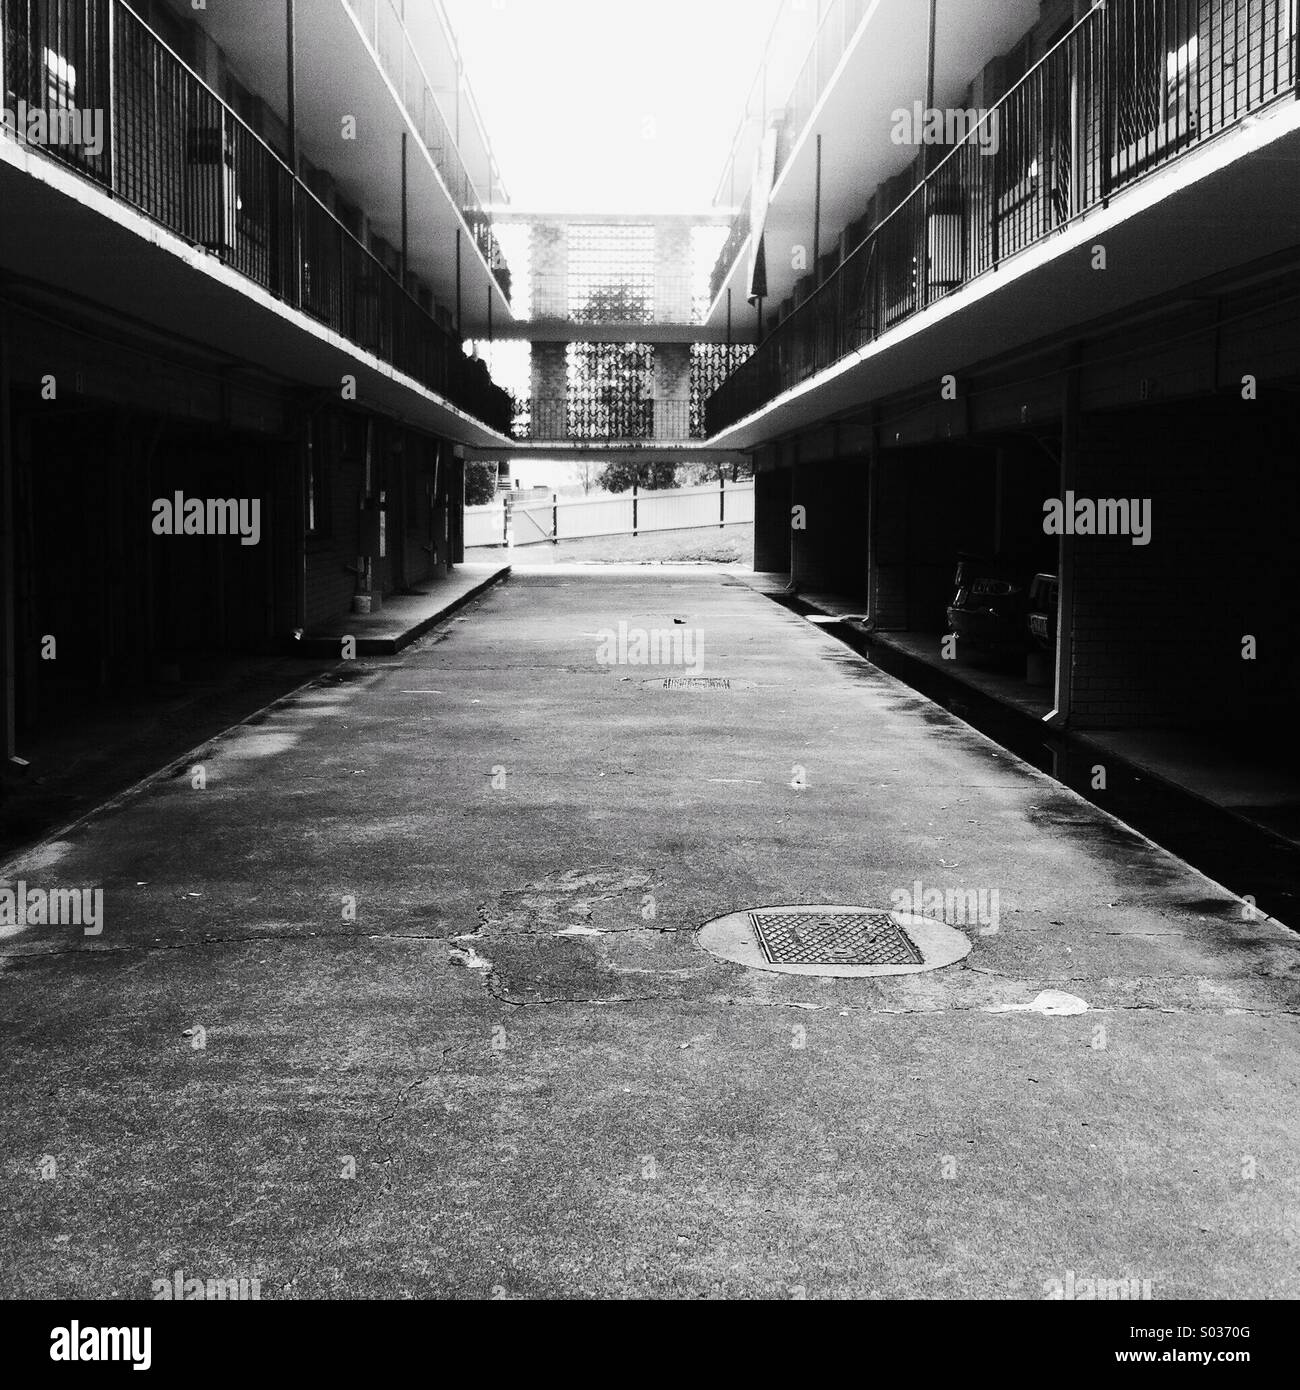 Deserted apartments - Stock Image